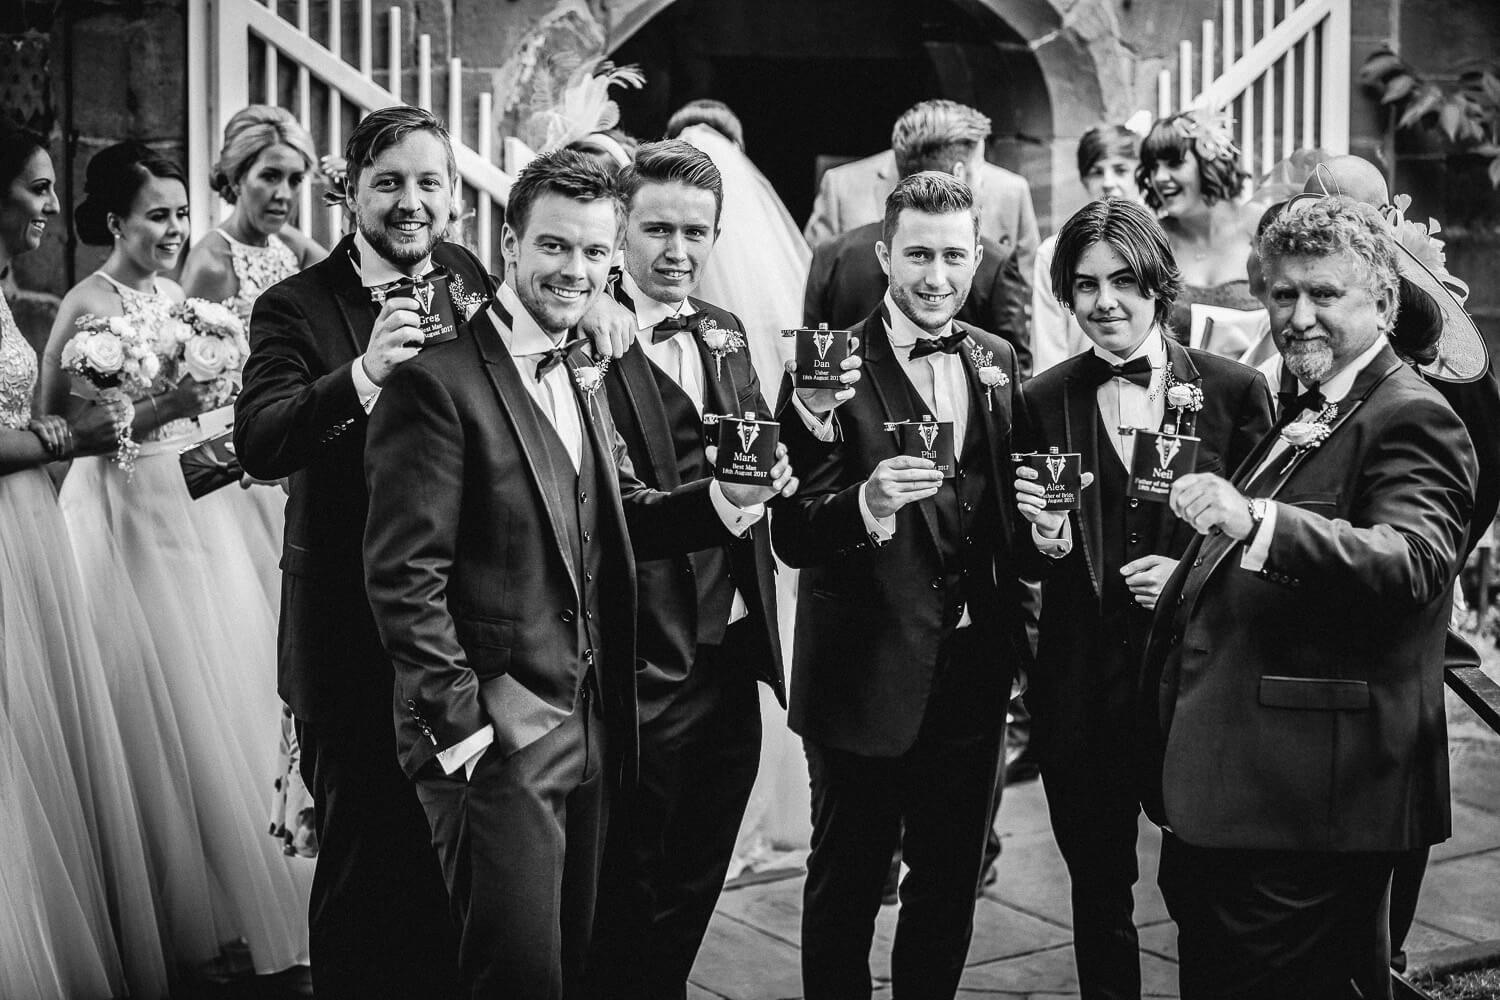 Ushers with wedding hip flasks